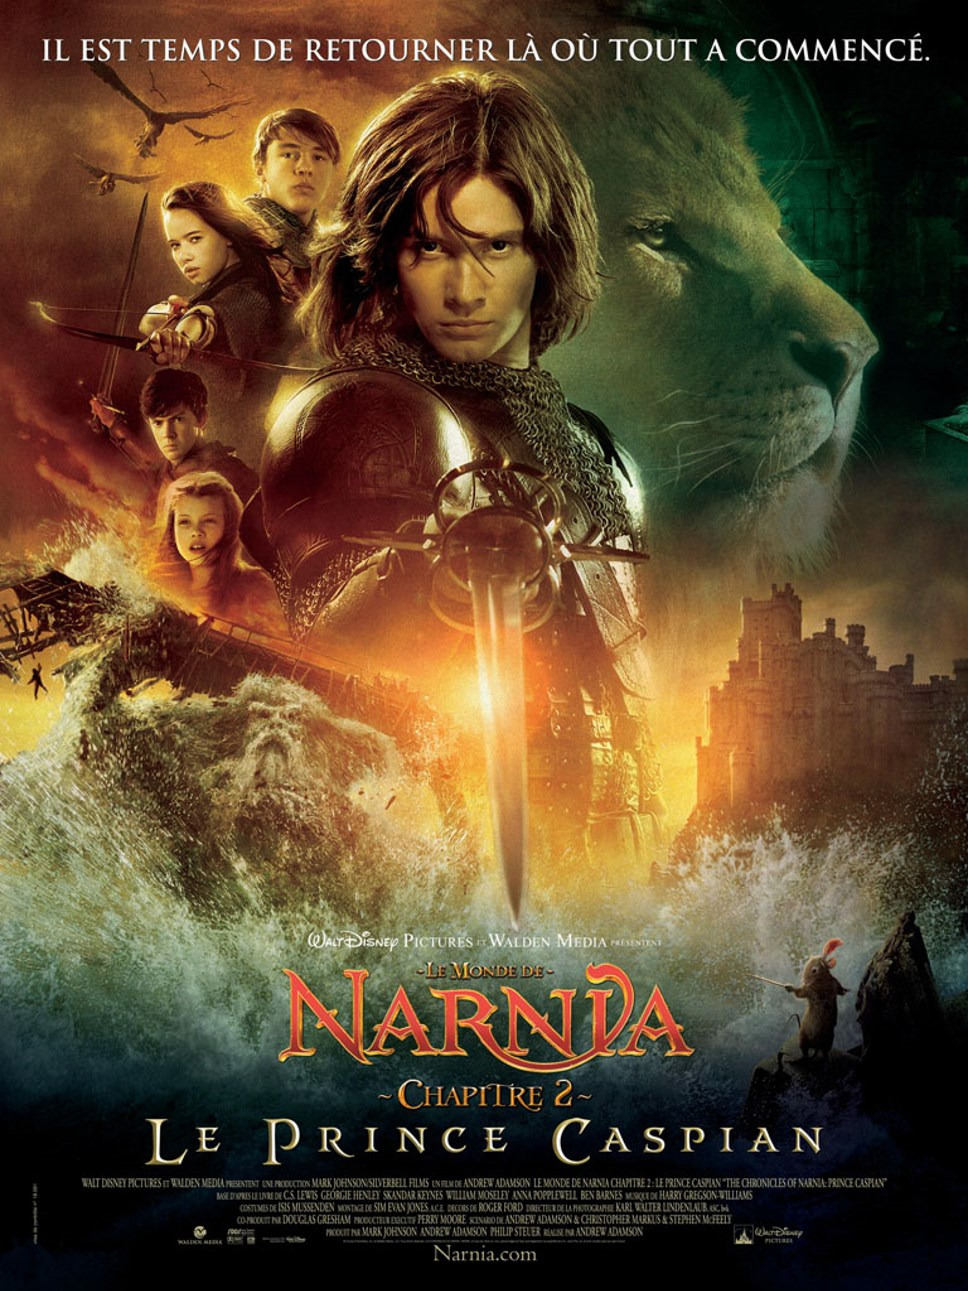 walt disney company walt disney pictures affiche monde narnia prince caspian poster chronicles narnia prince caspian